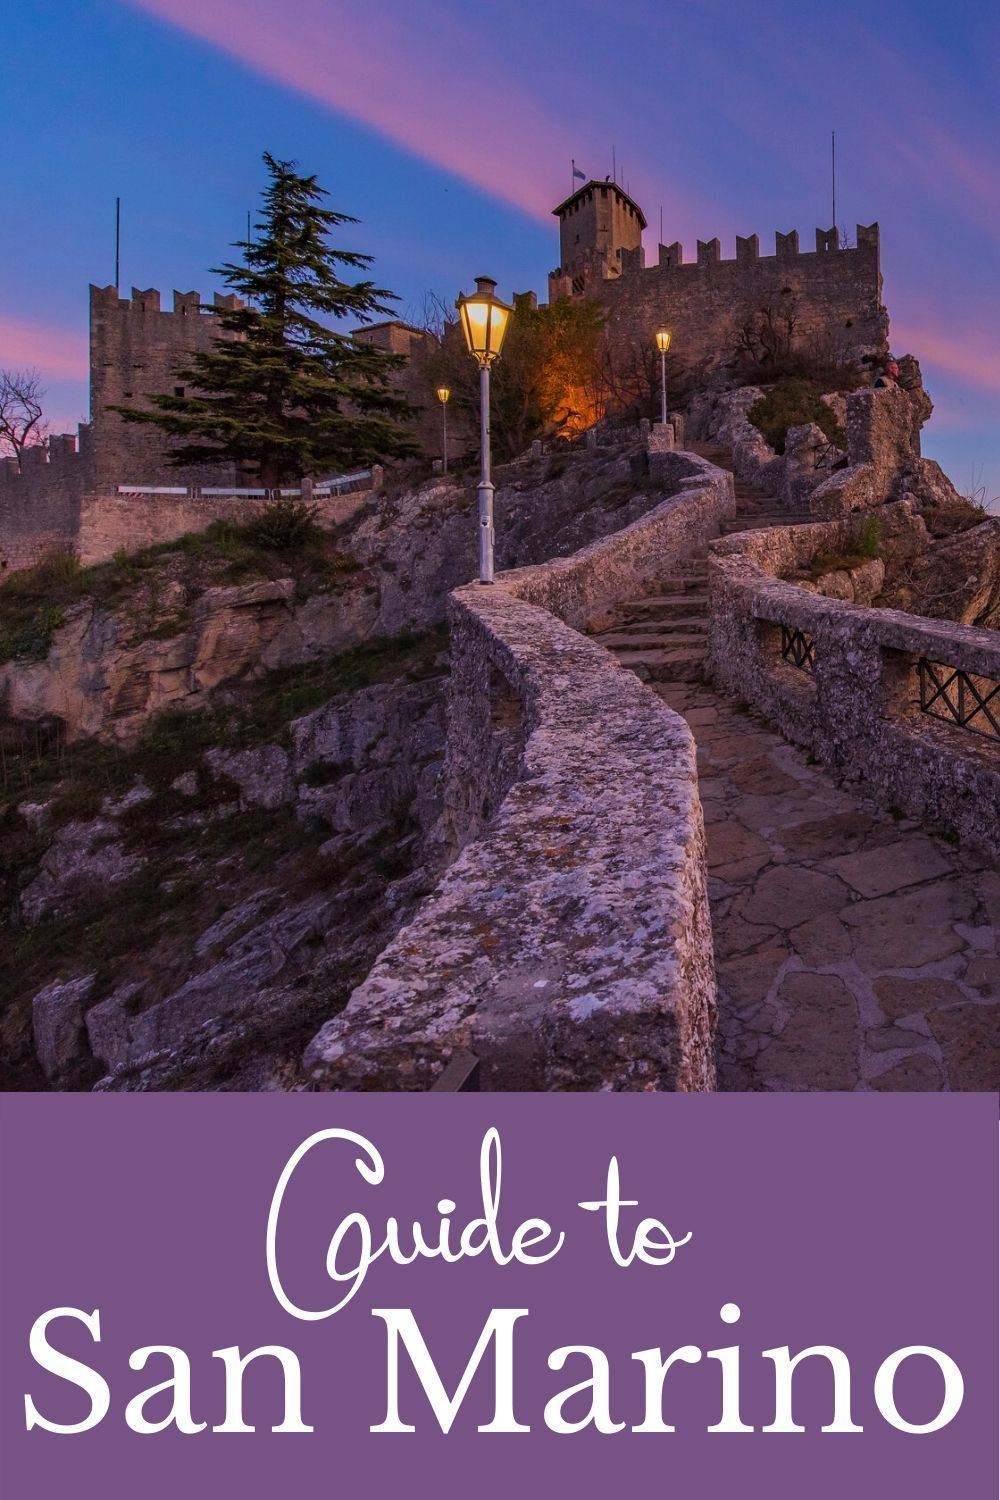 San Marino is three hours south of Venice and is a beautiful, historic micro-country.  Travelers should visit if they can while in Italy - here's your guide to what this beautiful destination has to offer.